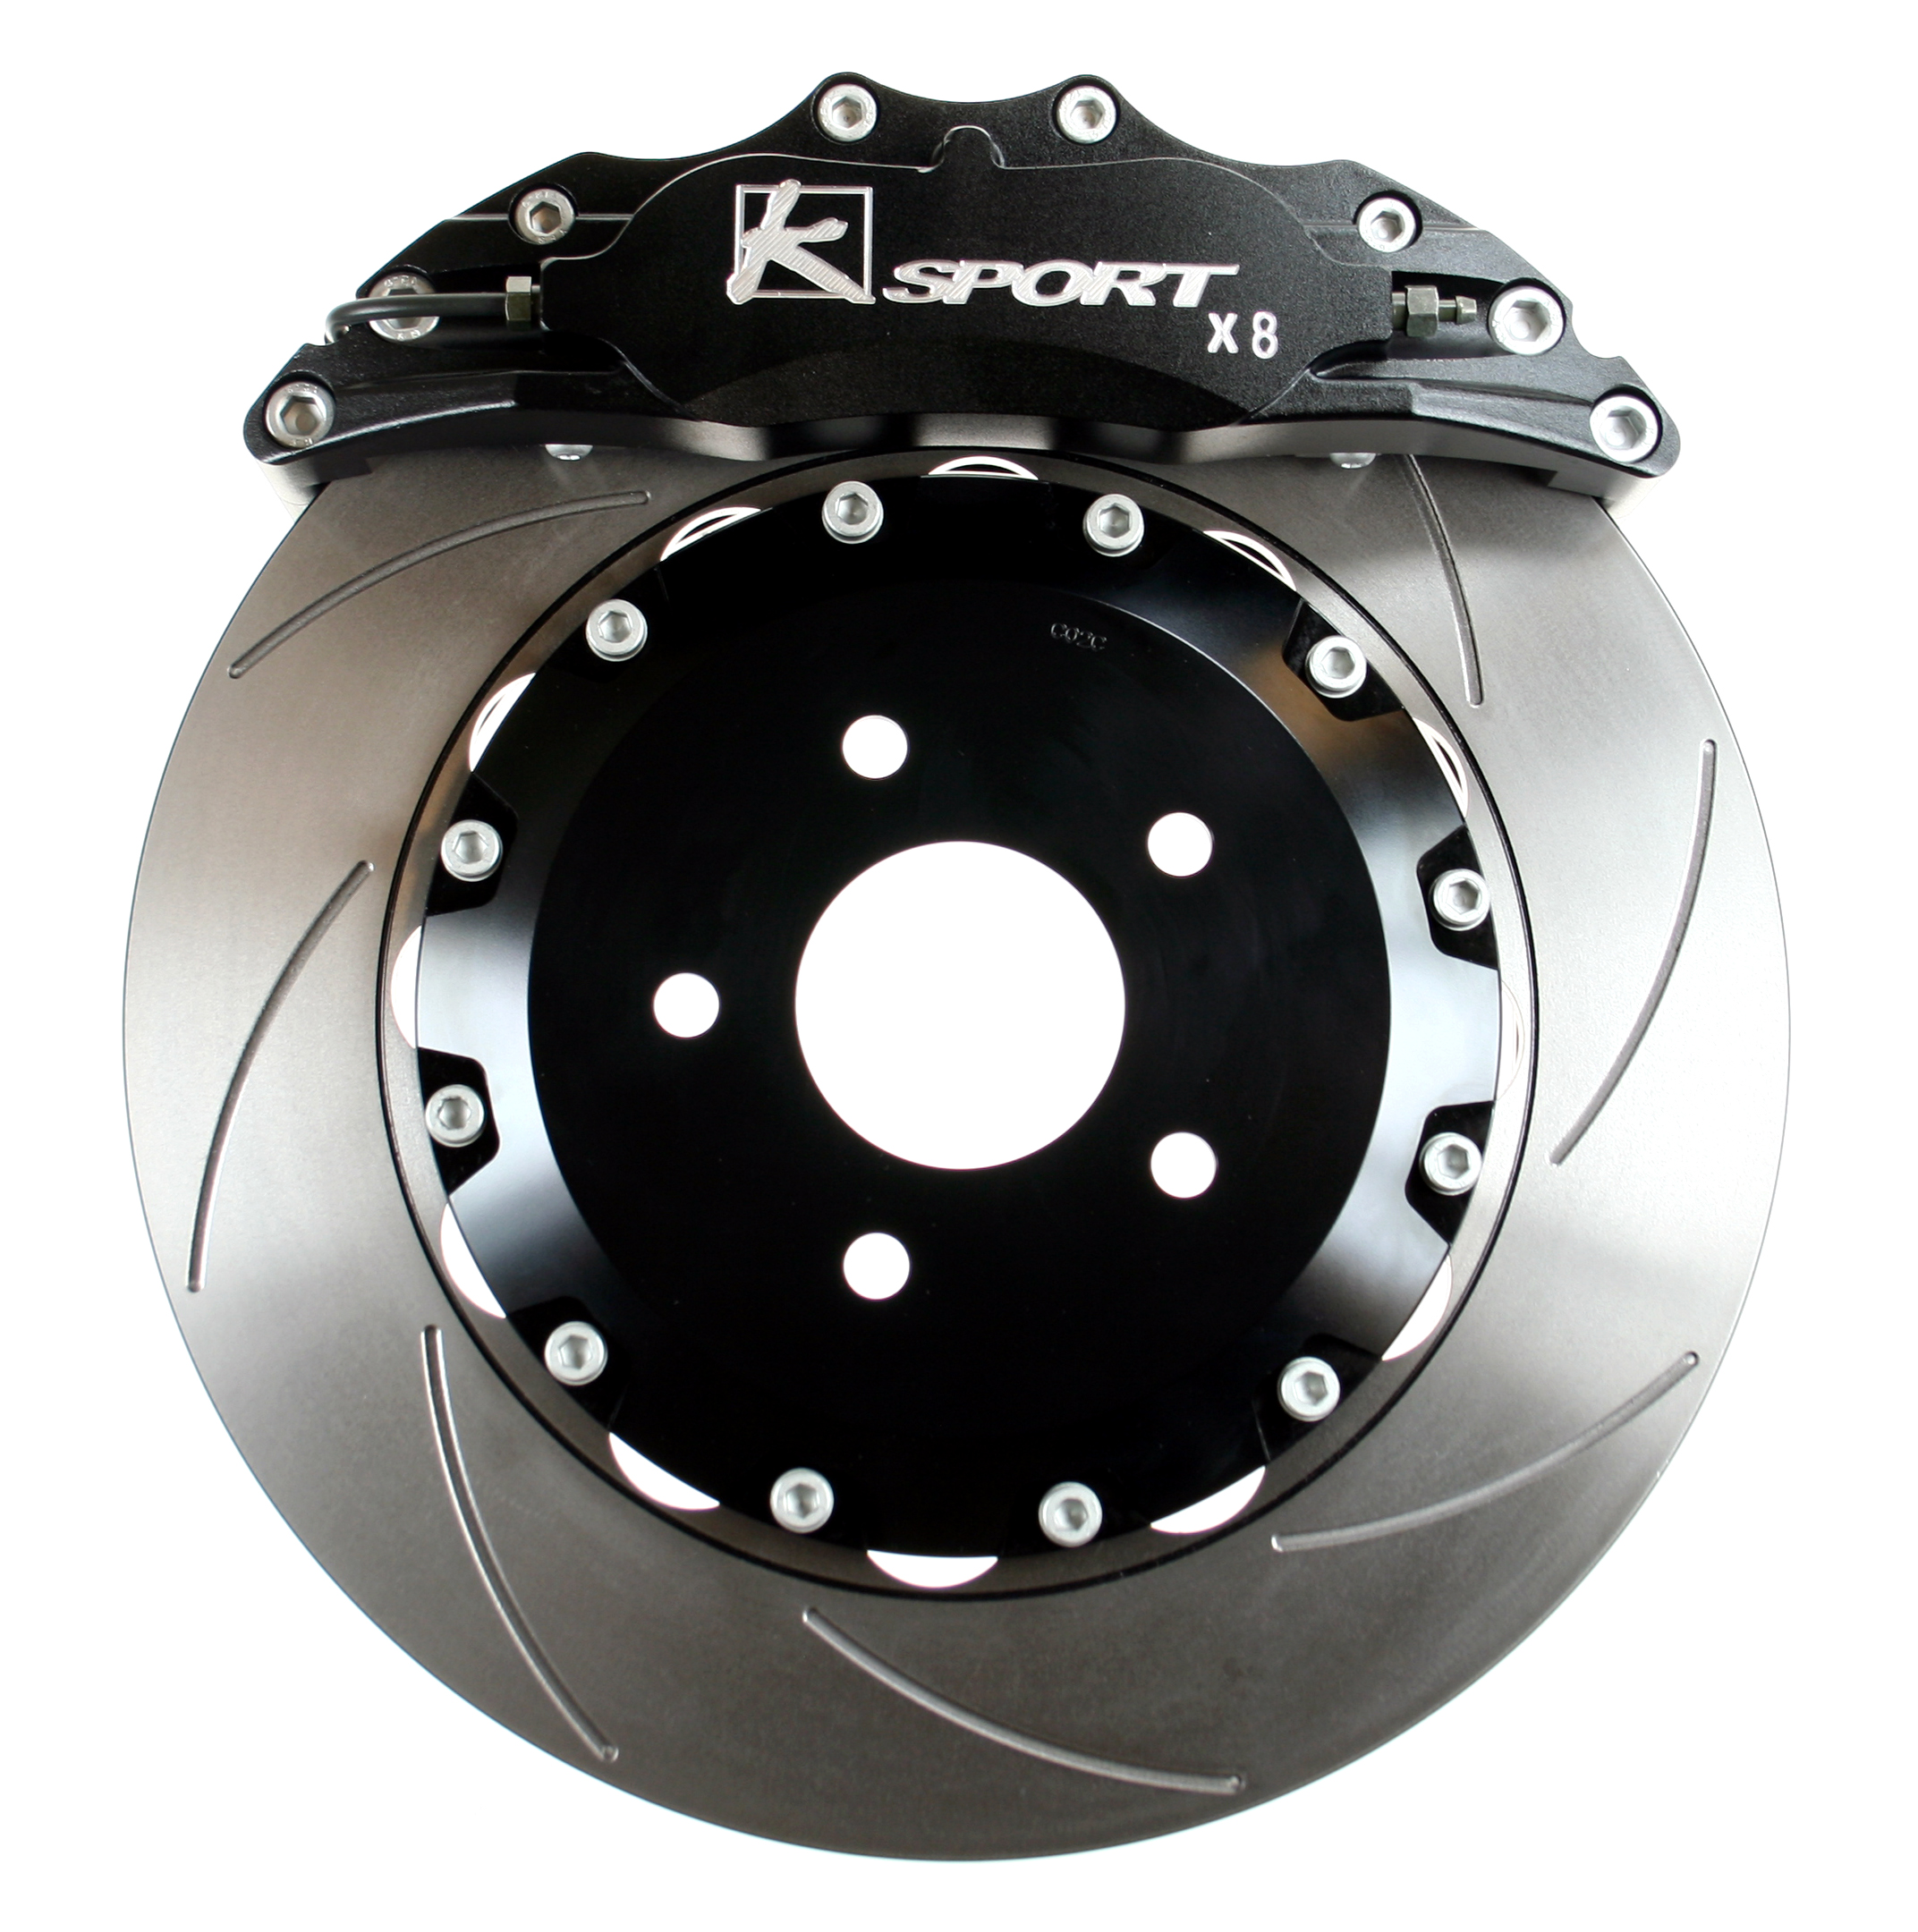 K Sport Brake Kits Prices Include Vat In Uk 163 Do Not